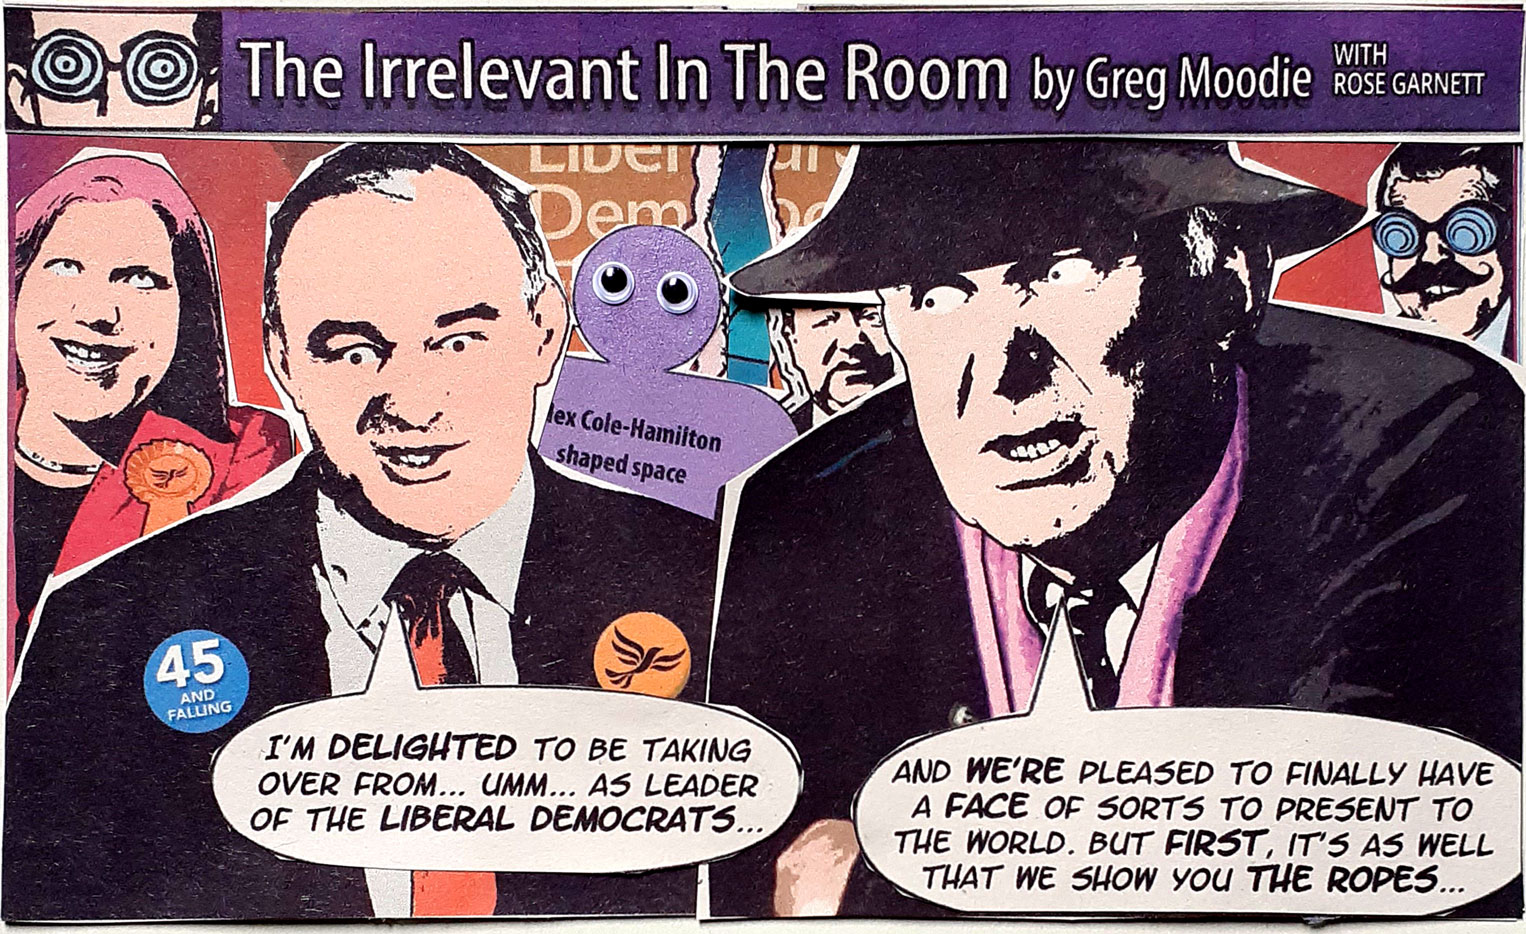 The Irrelevant In The Room